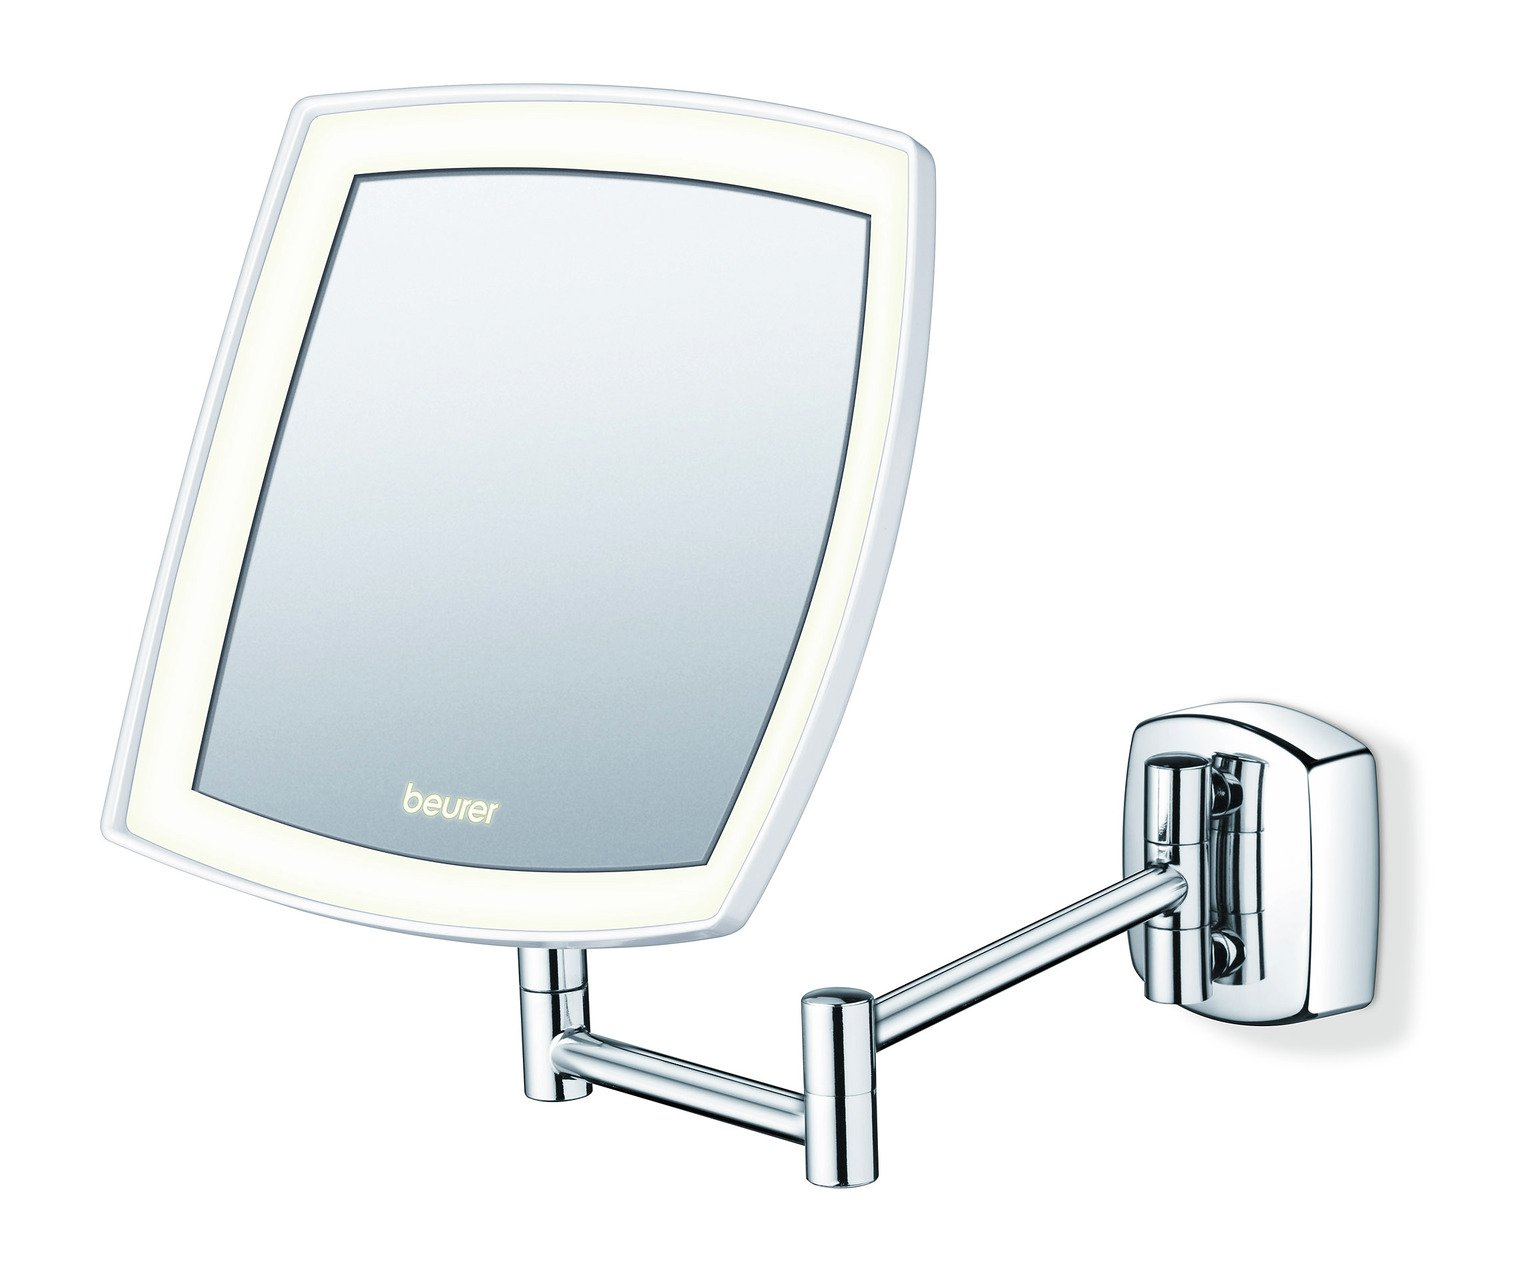 Image of Beurer BS89 Illuminated LED Wall Mirror - Chrome.